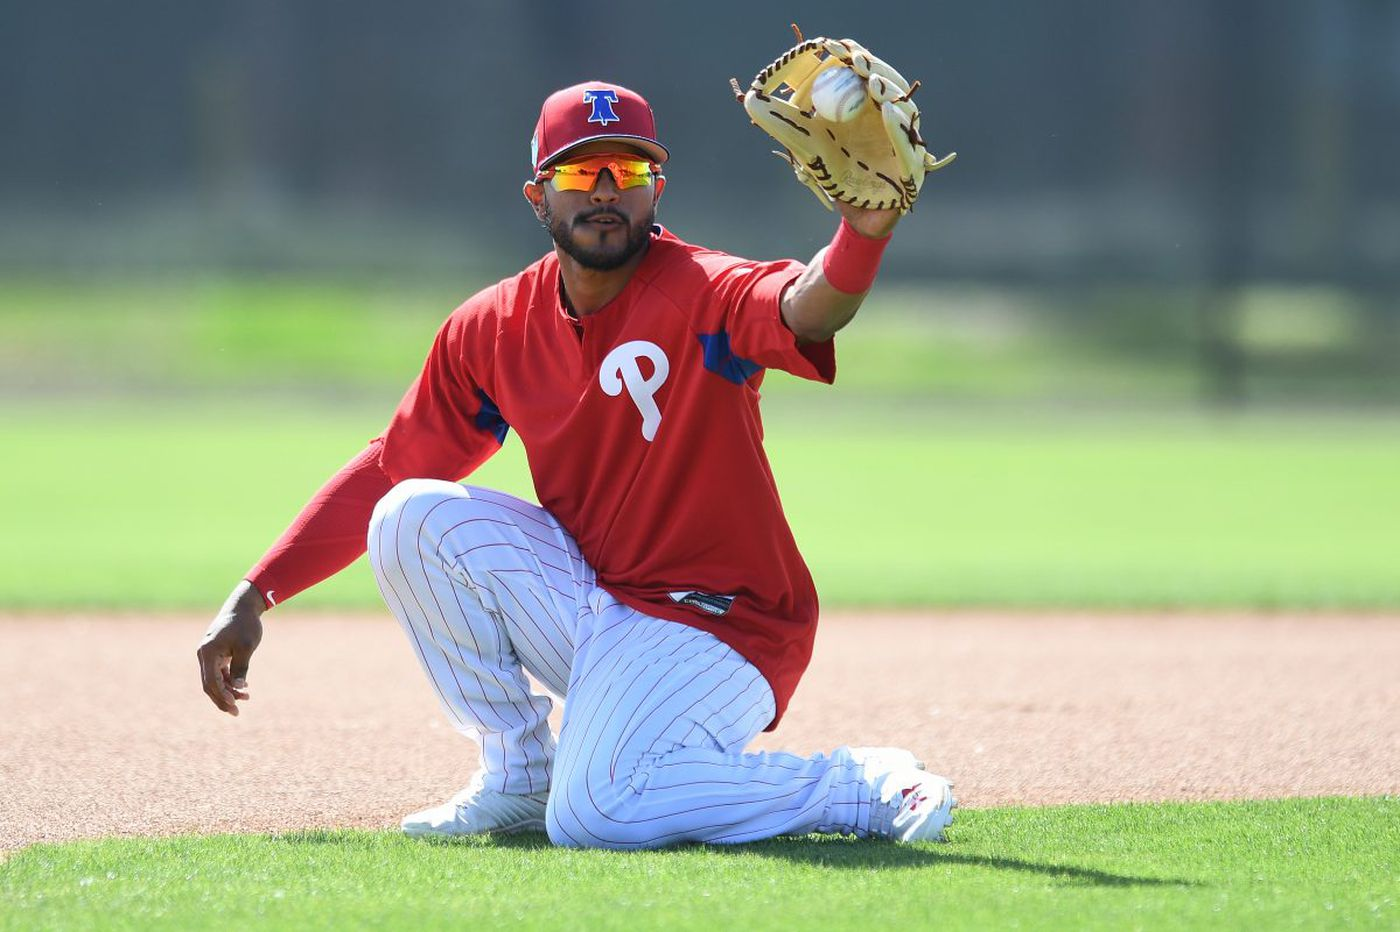 Motivated by Puerto Rico hurricane tragedy, Jesmuel Valentin has shot to make Phillies